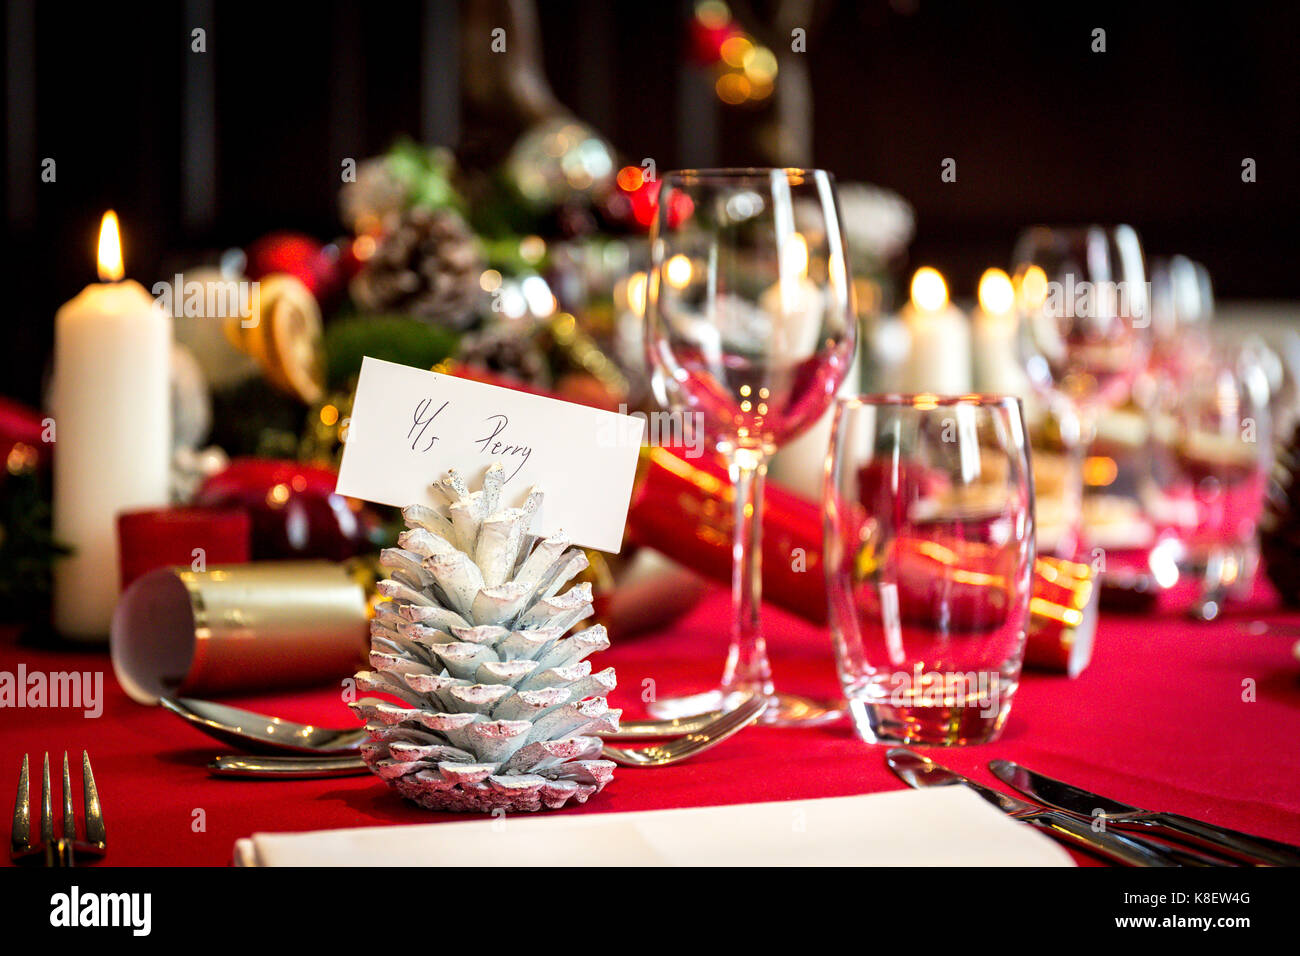 Dining table set for christmas lunch with place settings, decorations and  candles